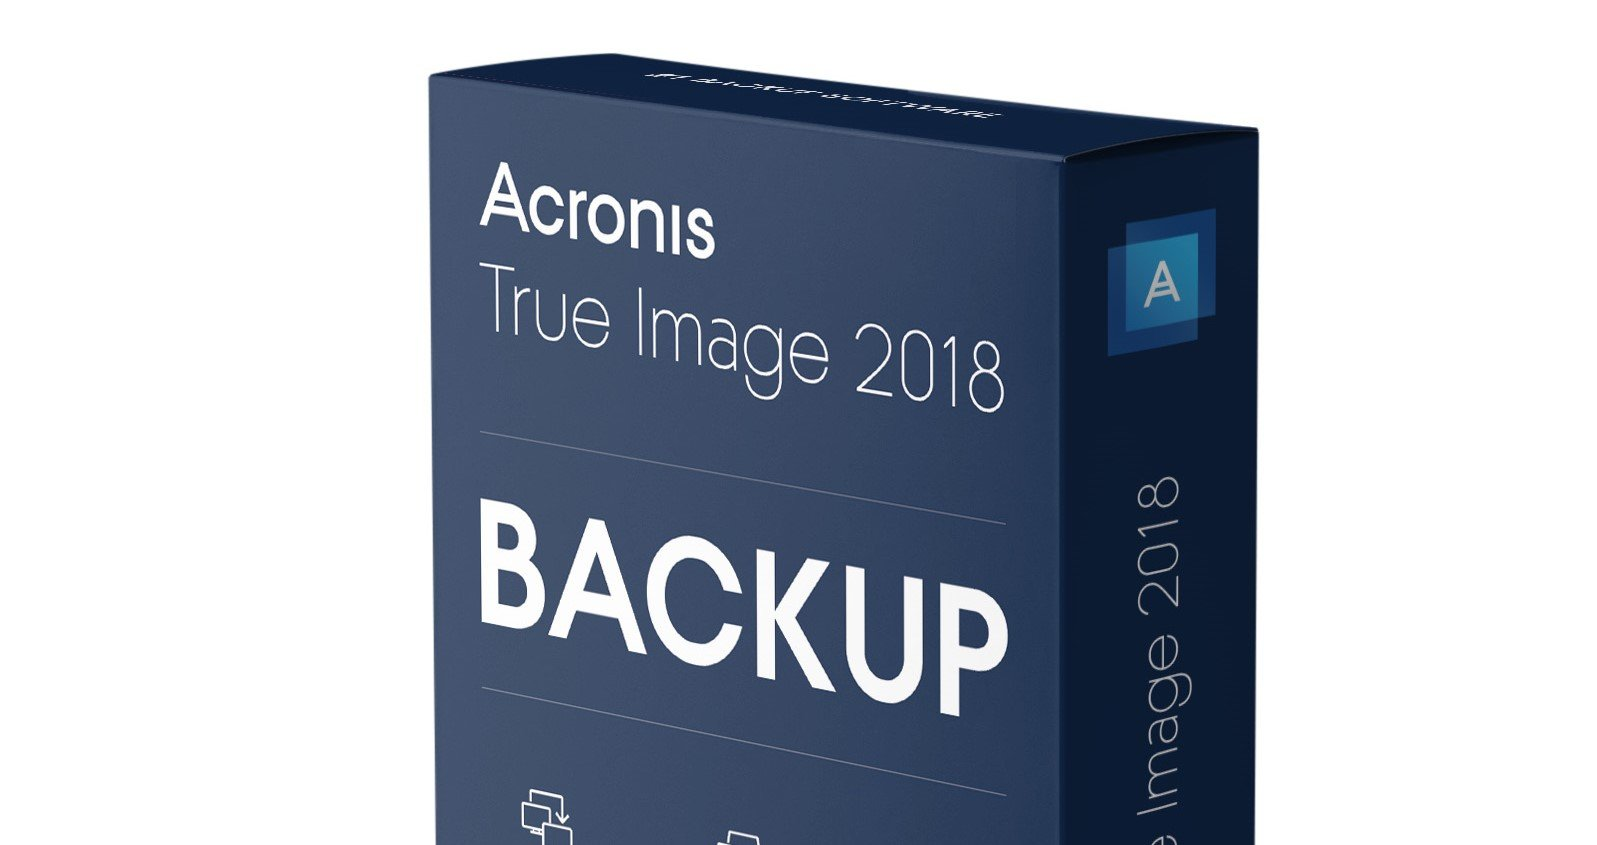 acronis-true-image-2018-AI-banner